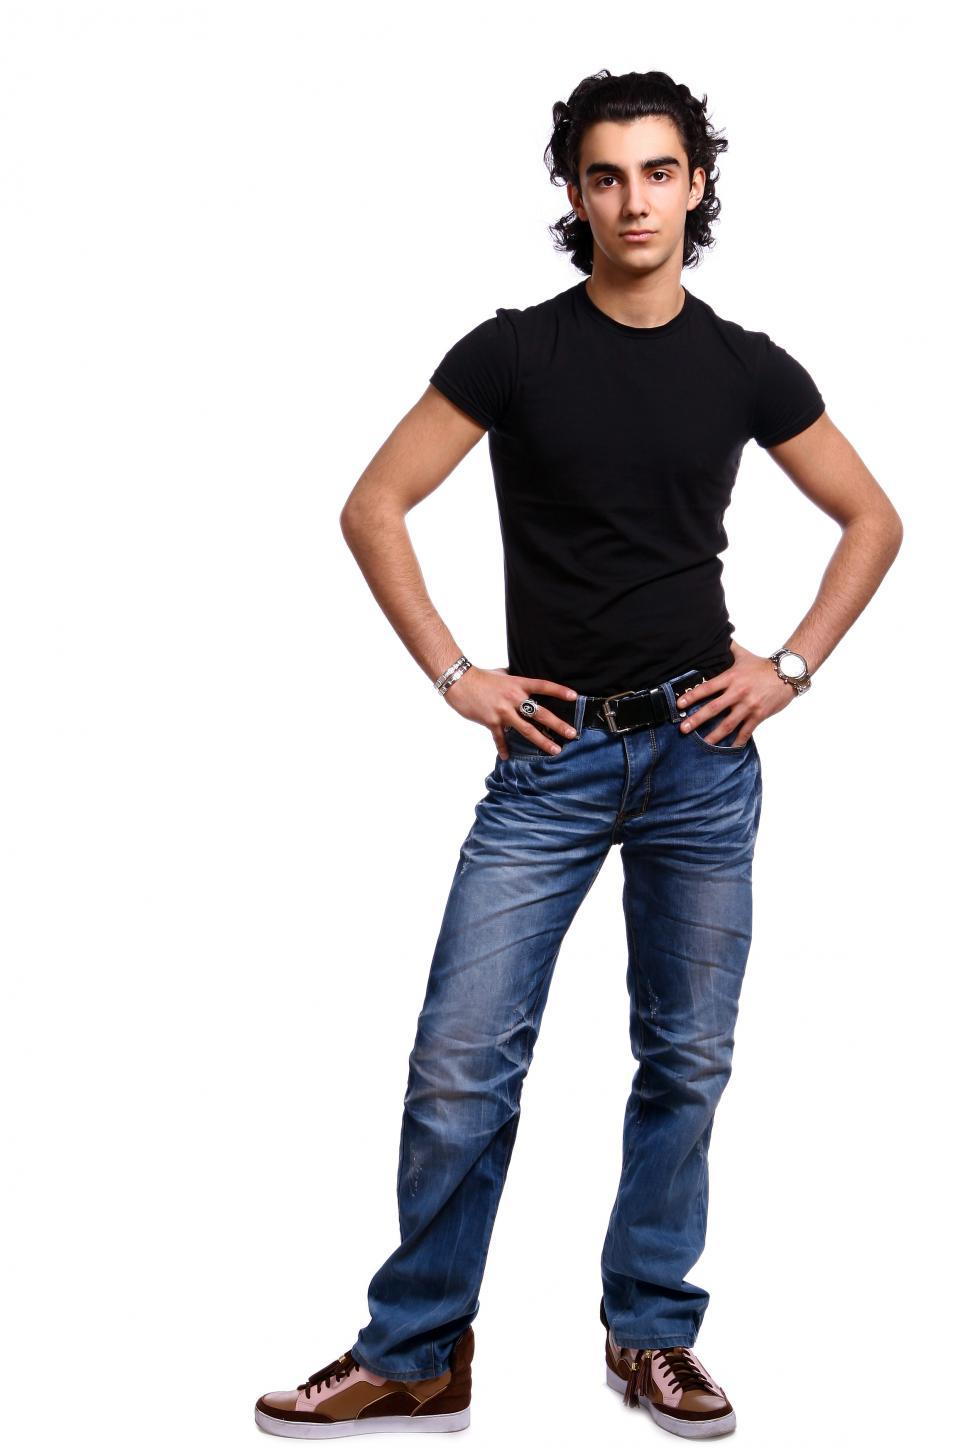 Download Free Stock Photo of Full body photo of young latino man